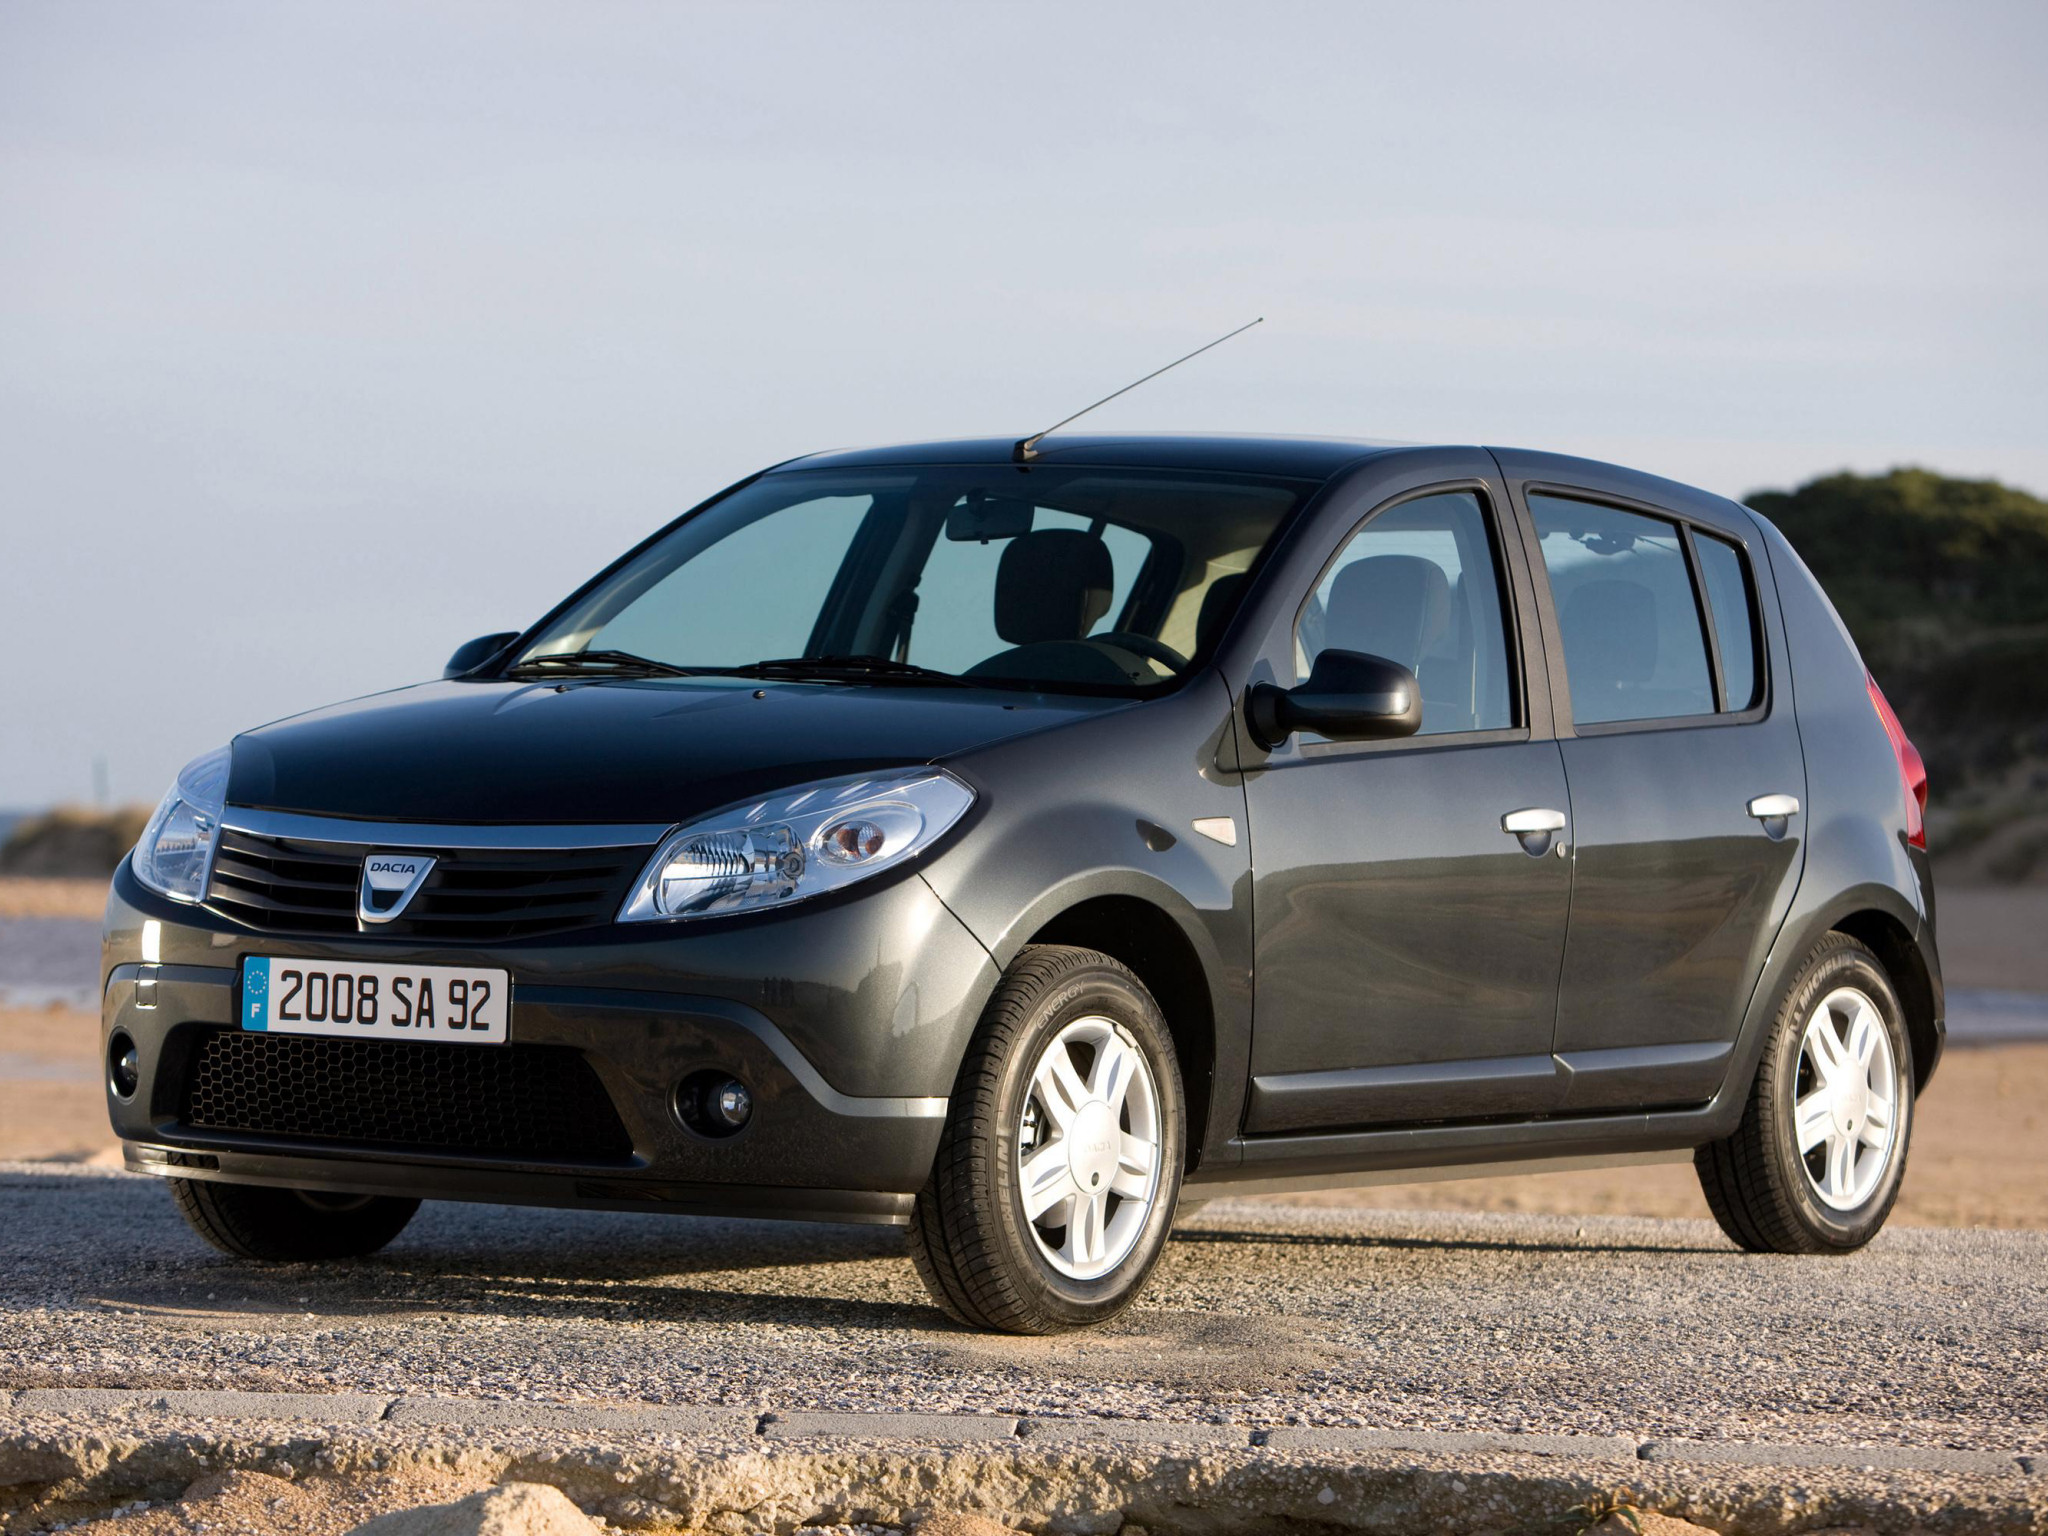 2008 Dacia Sandero Hatchback 5-door